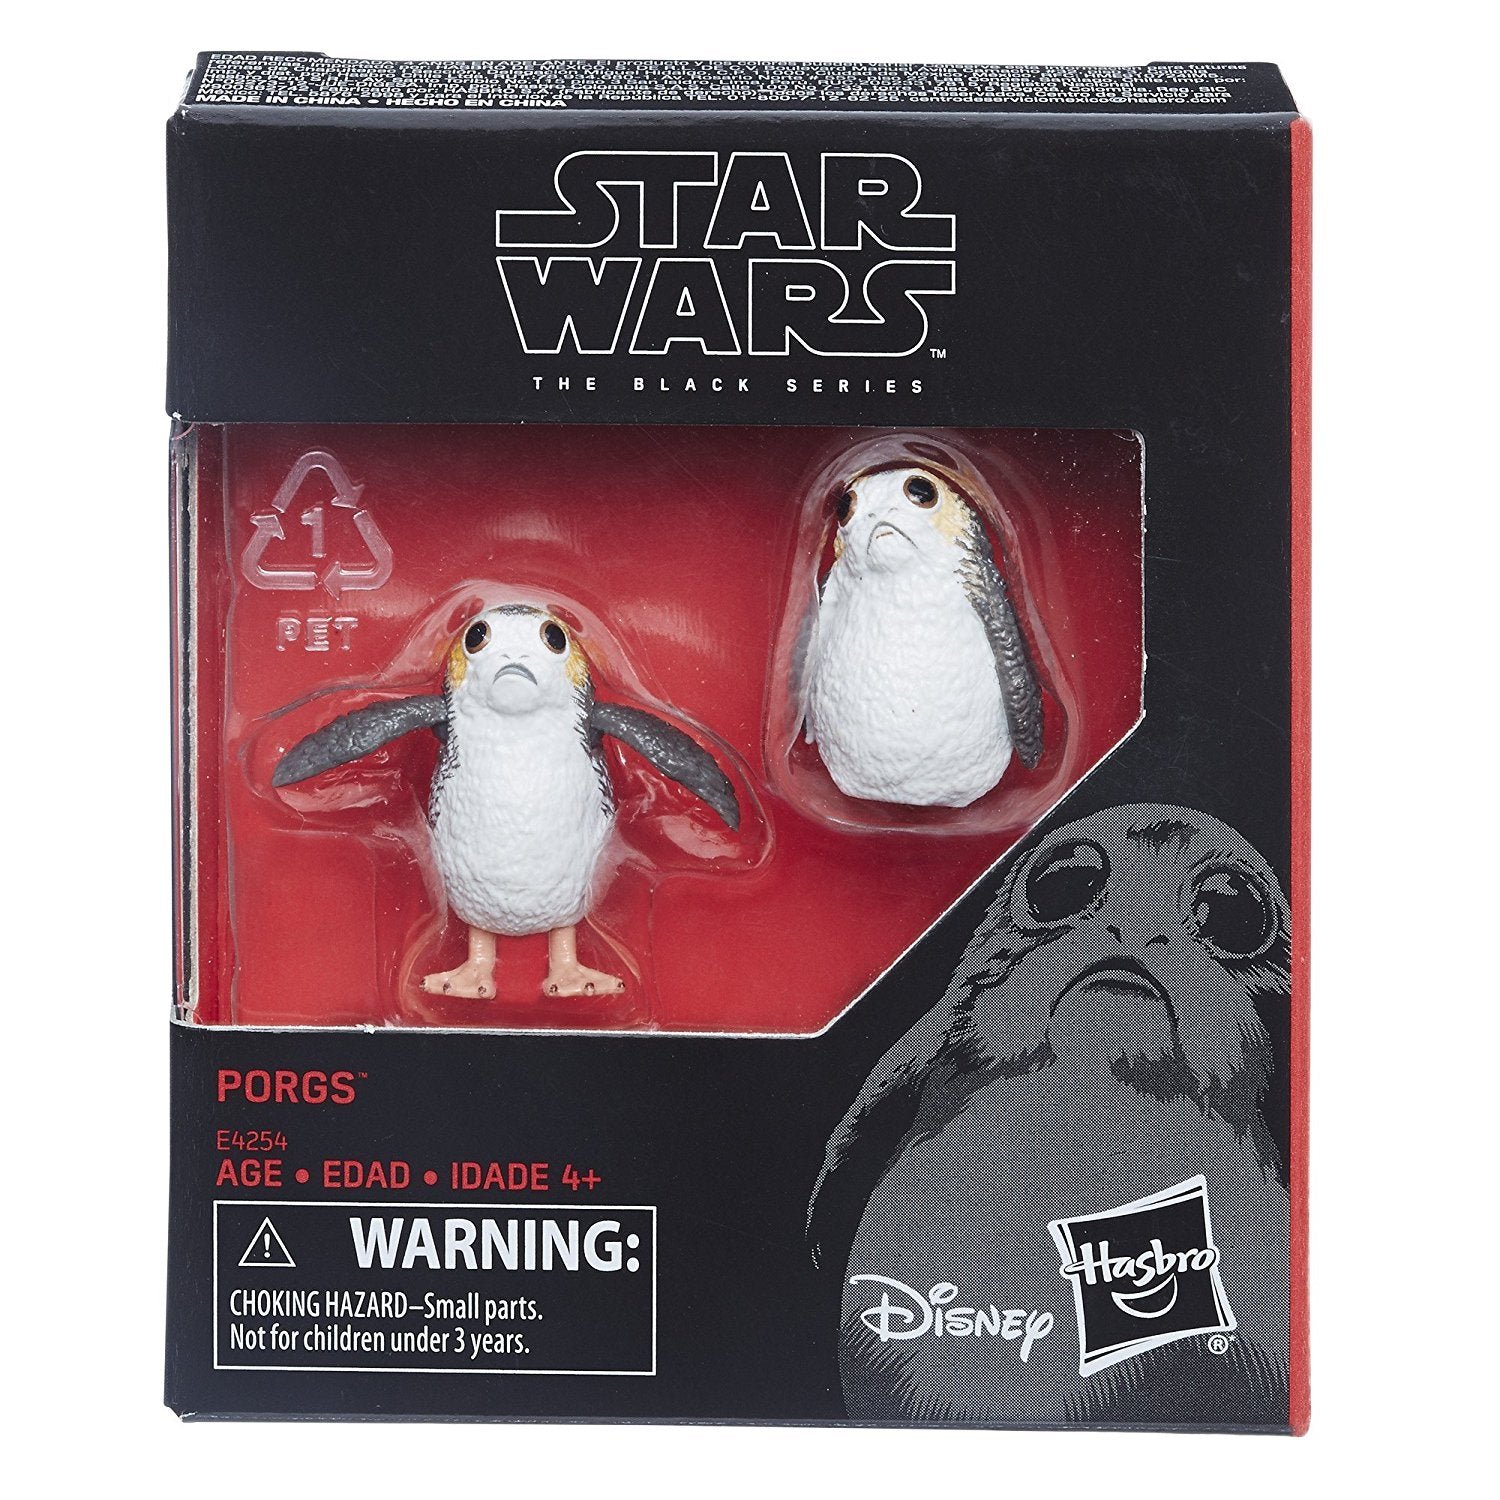 Porgs Star Wars Black Series 6 Inch Scale Figure